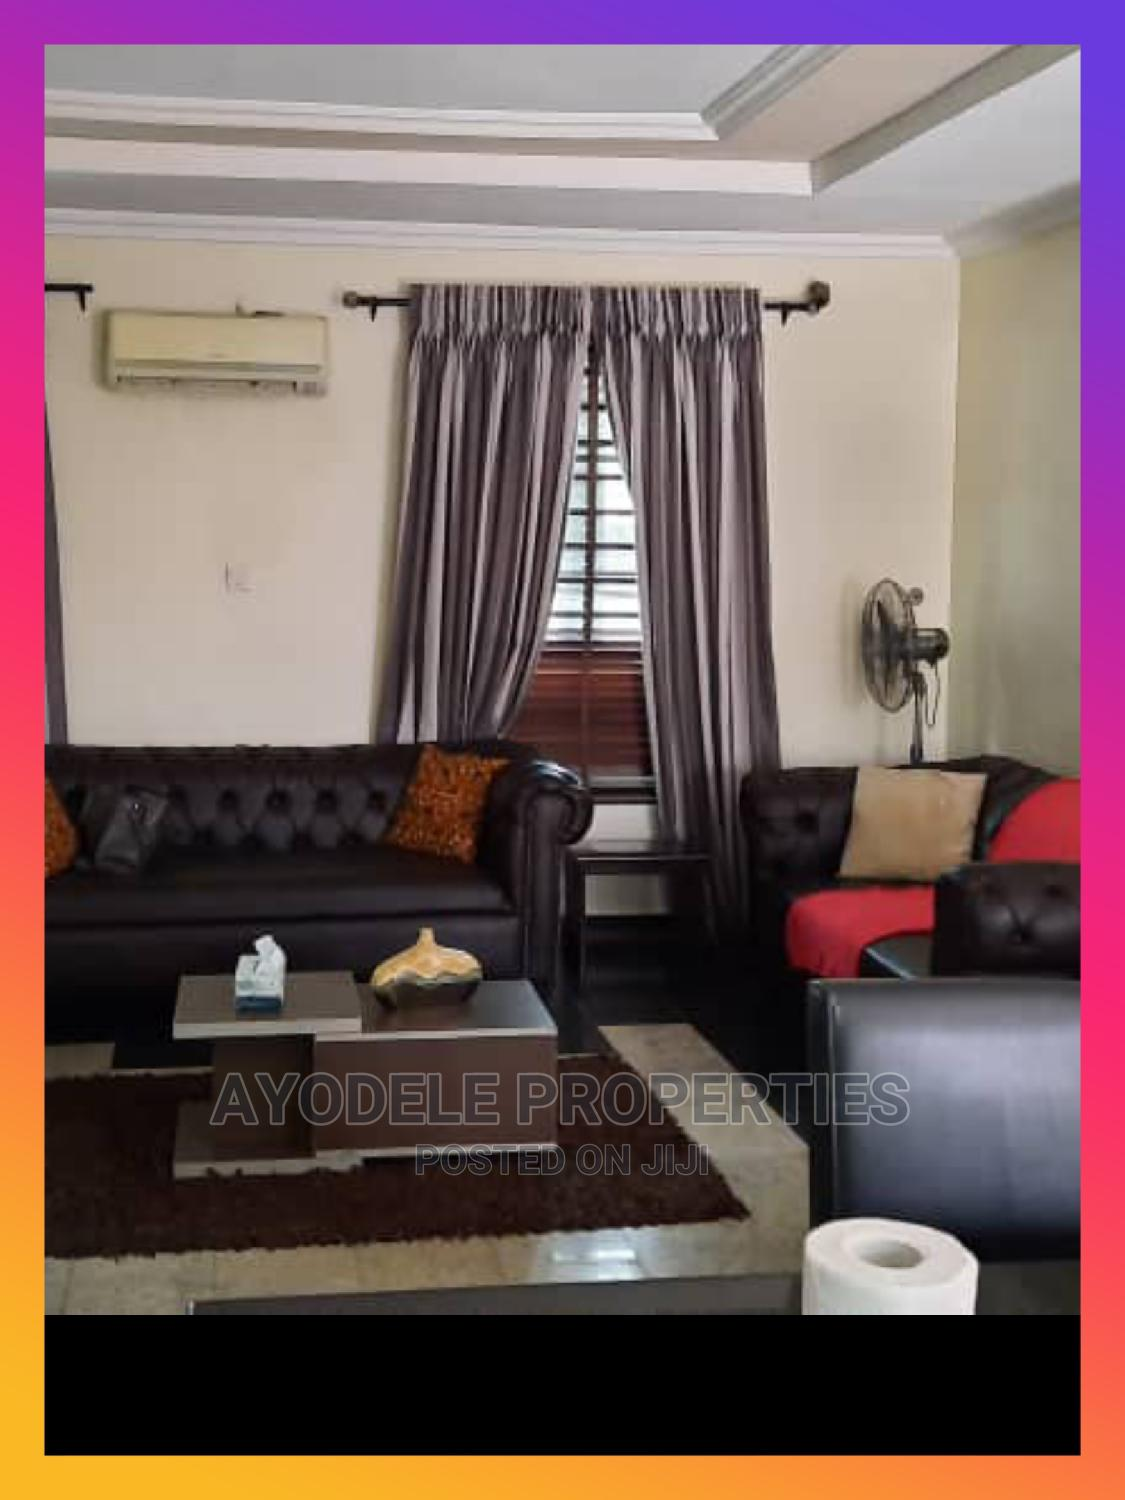 4 Bedrooms Duplex for Sale in 4 Bedroom Fully, Lekki   Houses & Apartments For Sale for sale in Lekki, Lagos State, Nigeria